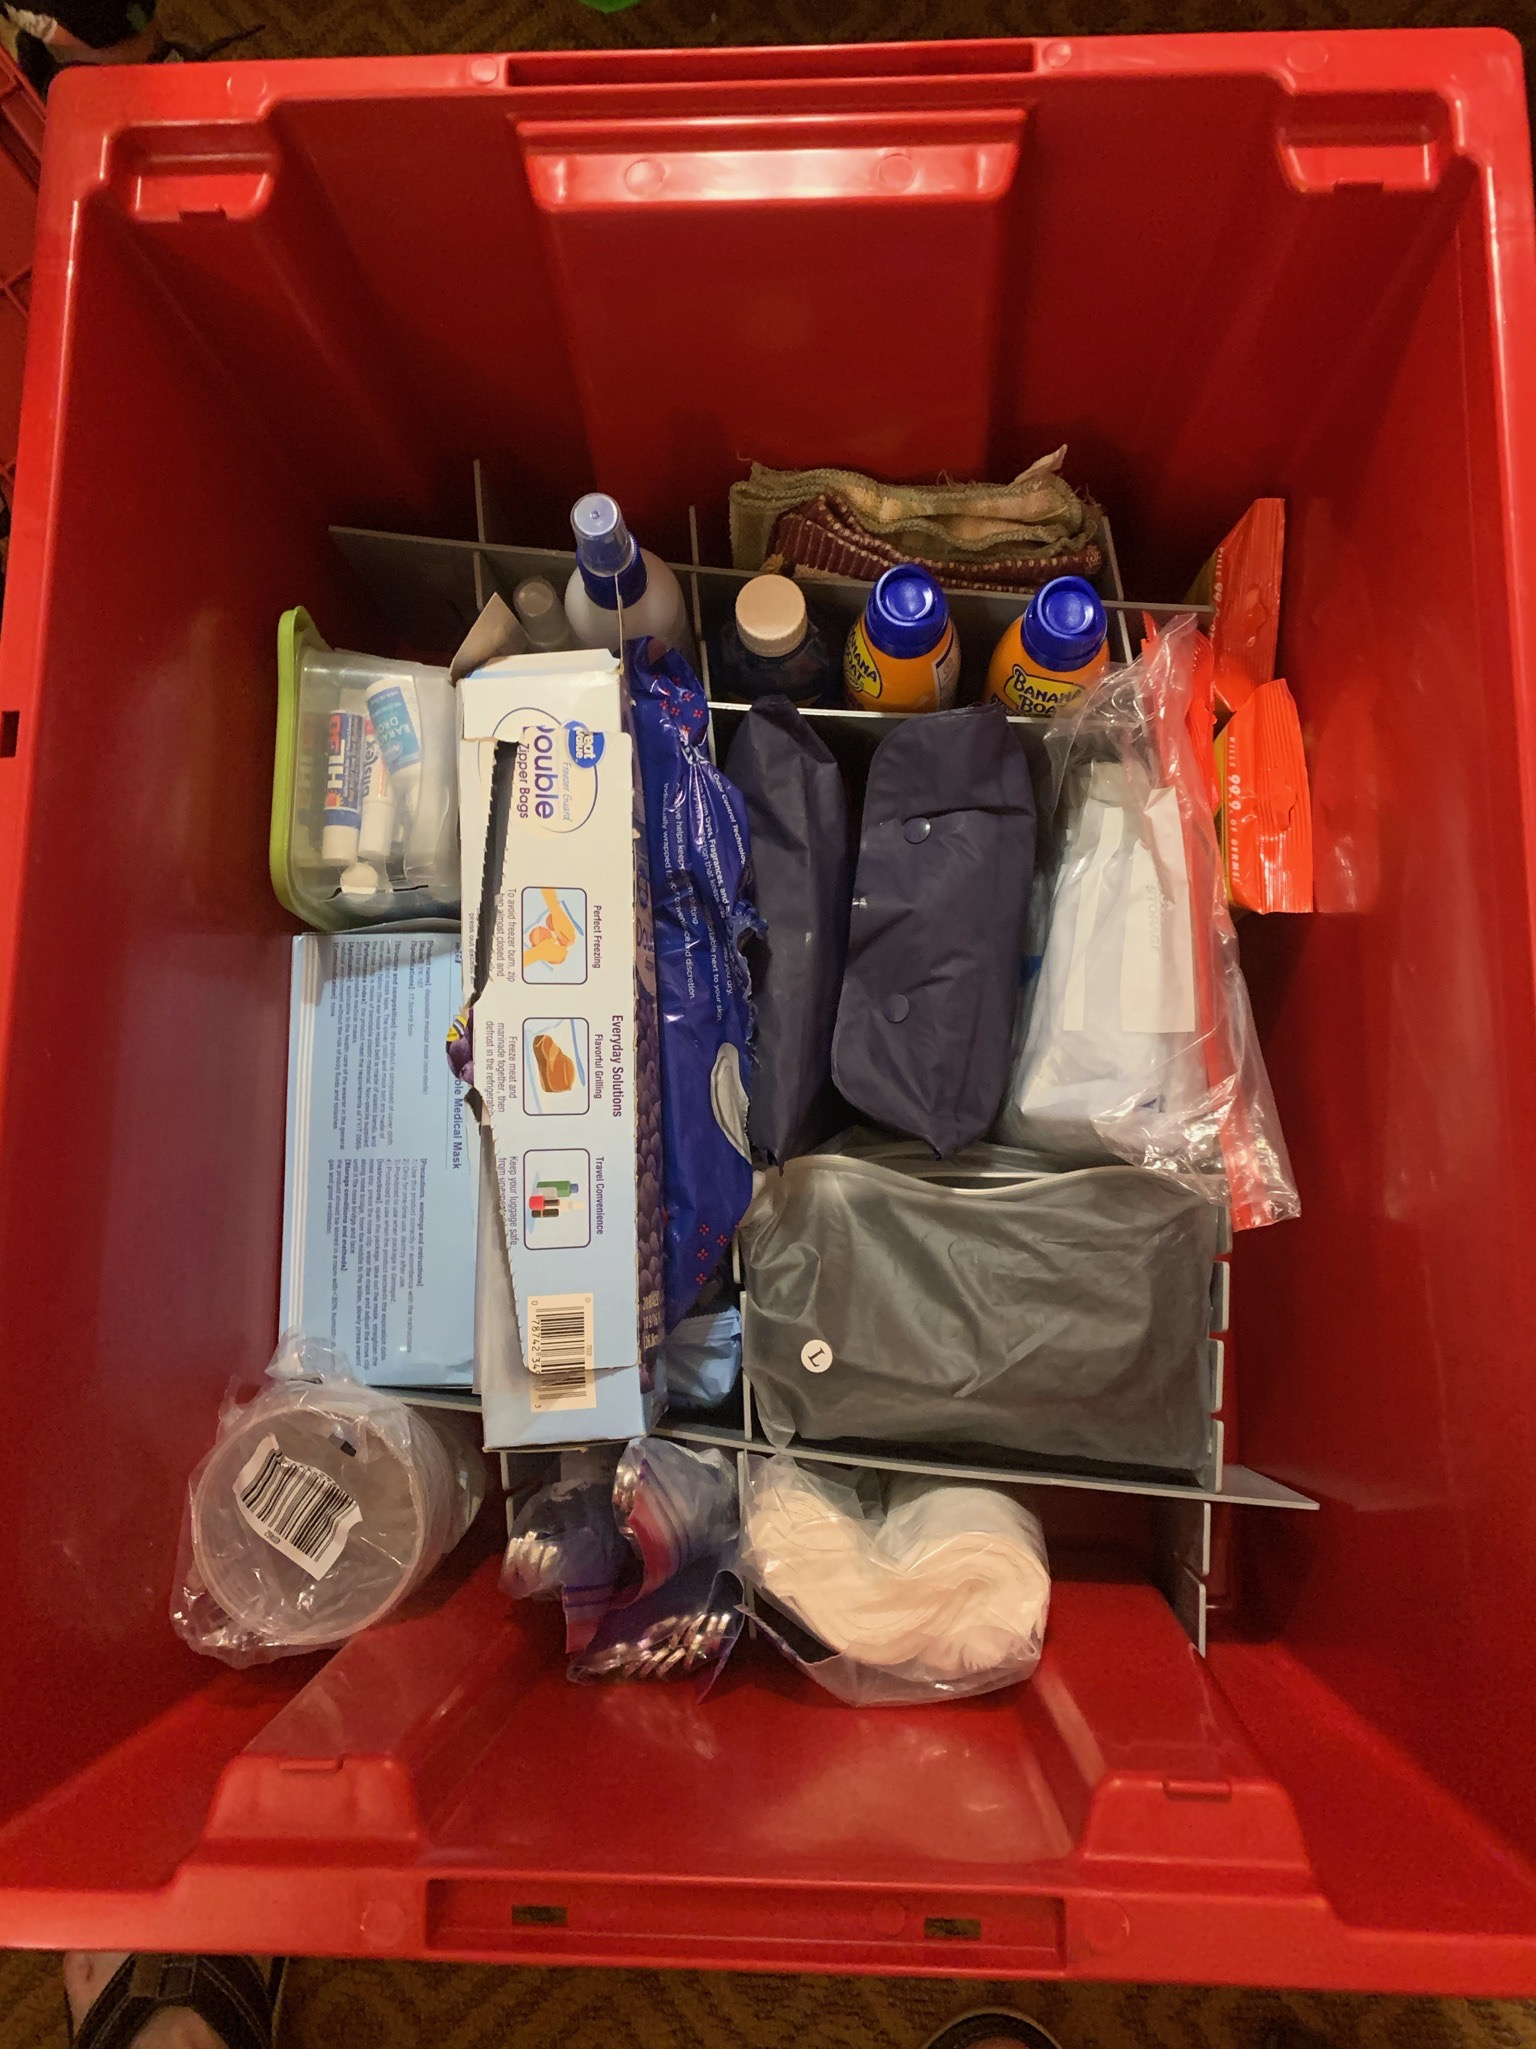 Red Owner's Locker container filled with items